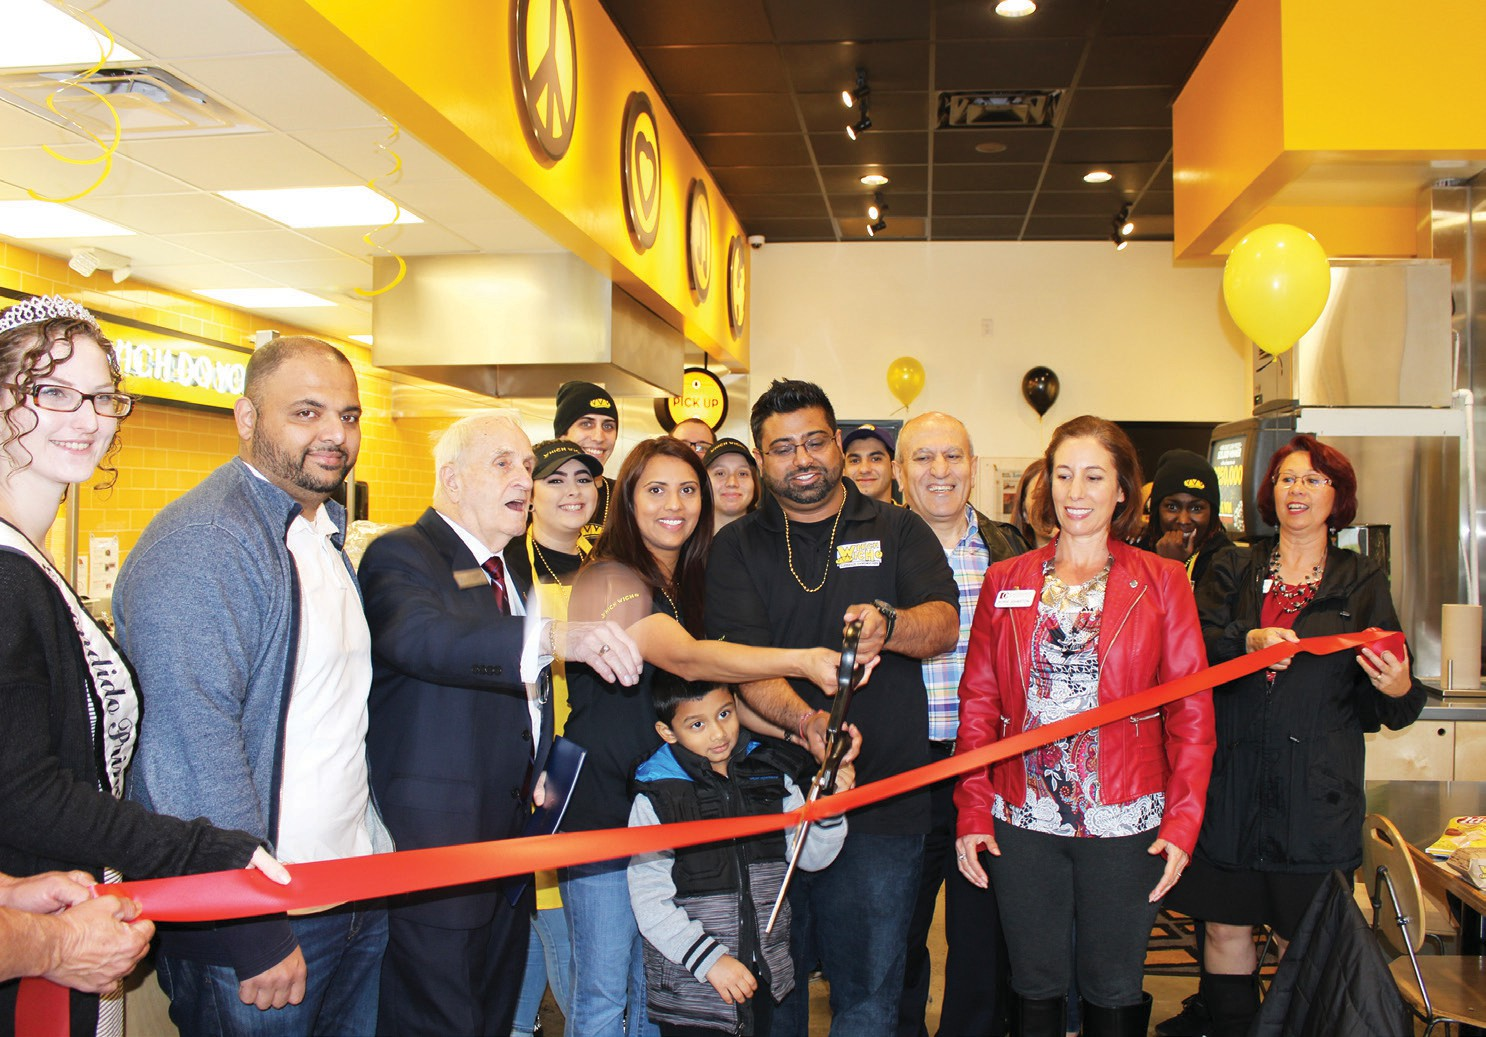 Despite the heavy rain, the Chamber of Commerce and local dignitaries showed up in force Friday to celebrate the ribbon cutting for the Escondido Which Wich. Gen. Mgr. Vimal Patel, his family, Mayor Sam Abed, Princess Amanda Cowie, and Chamber CEO Rorie Johnston were among those taking part.